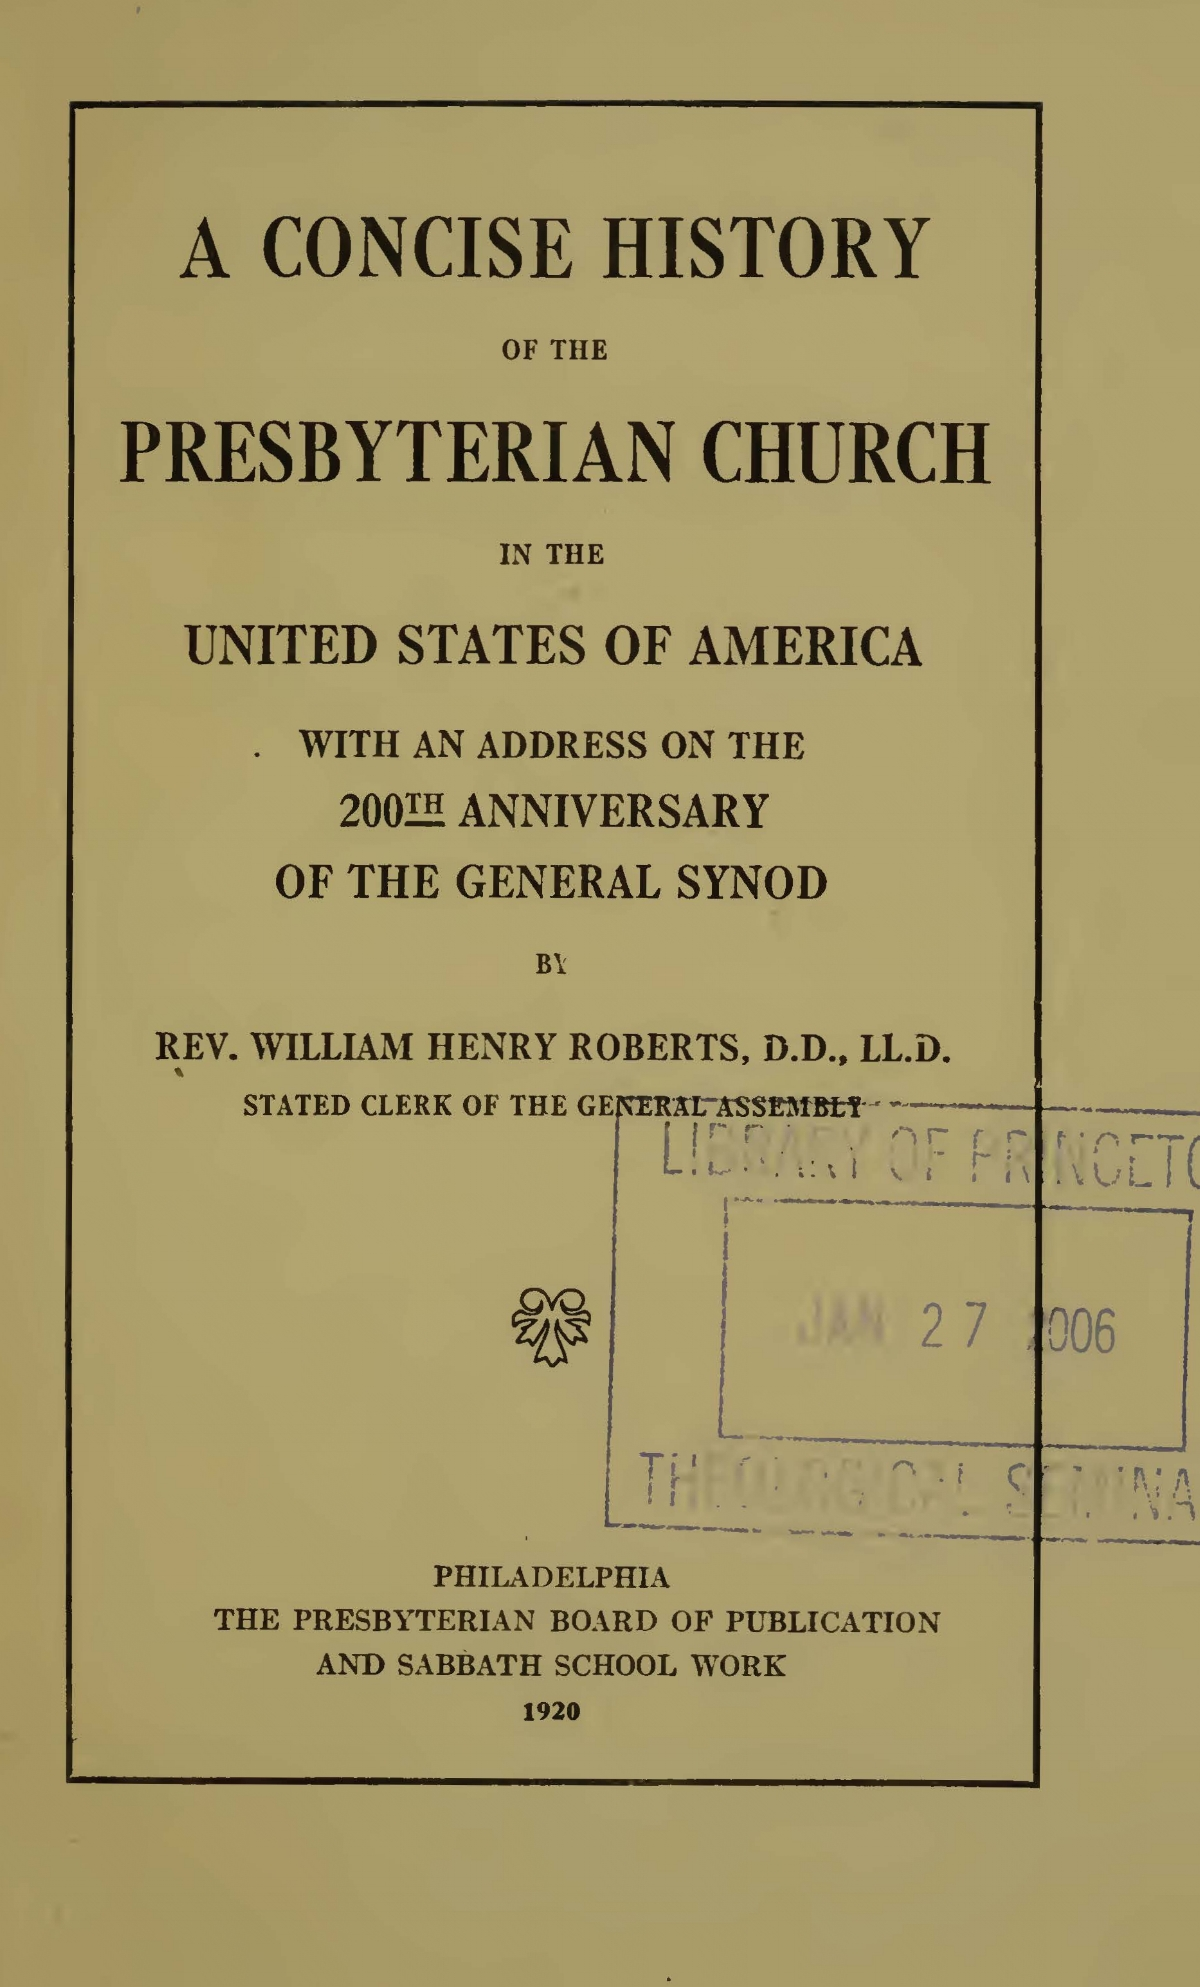 Roberts, William Henry, A Concise History of the Presbyterian Church in the United States of America Title Page.jpg